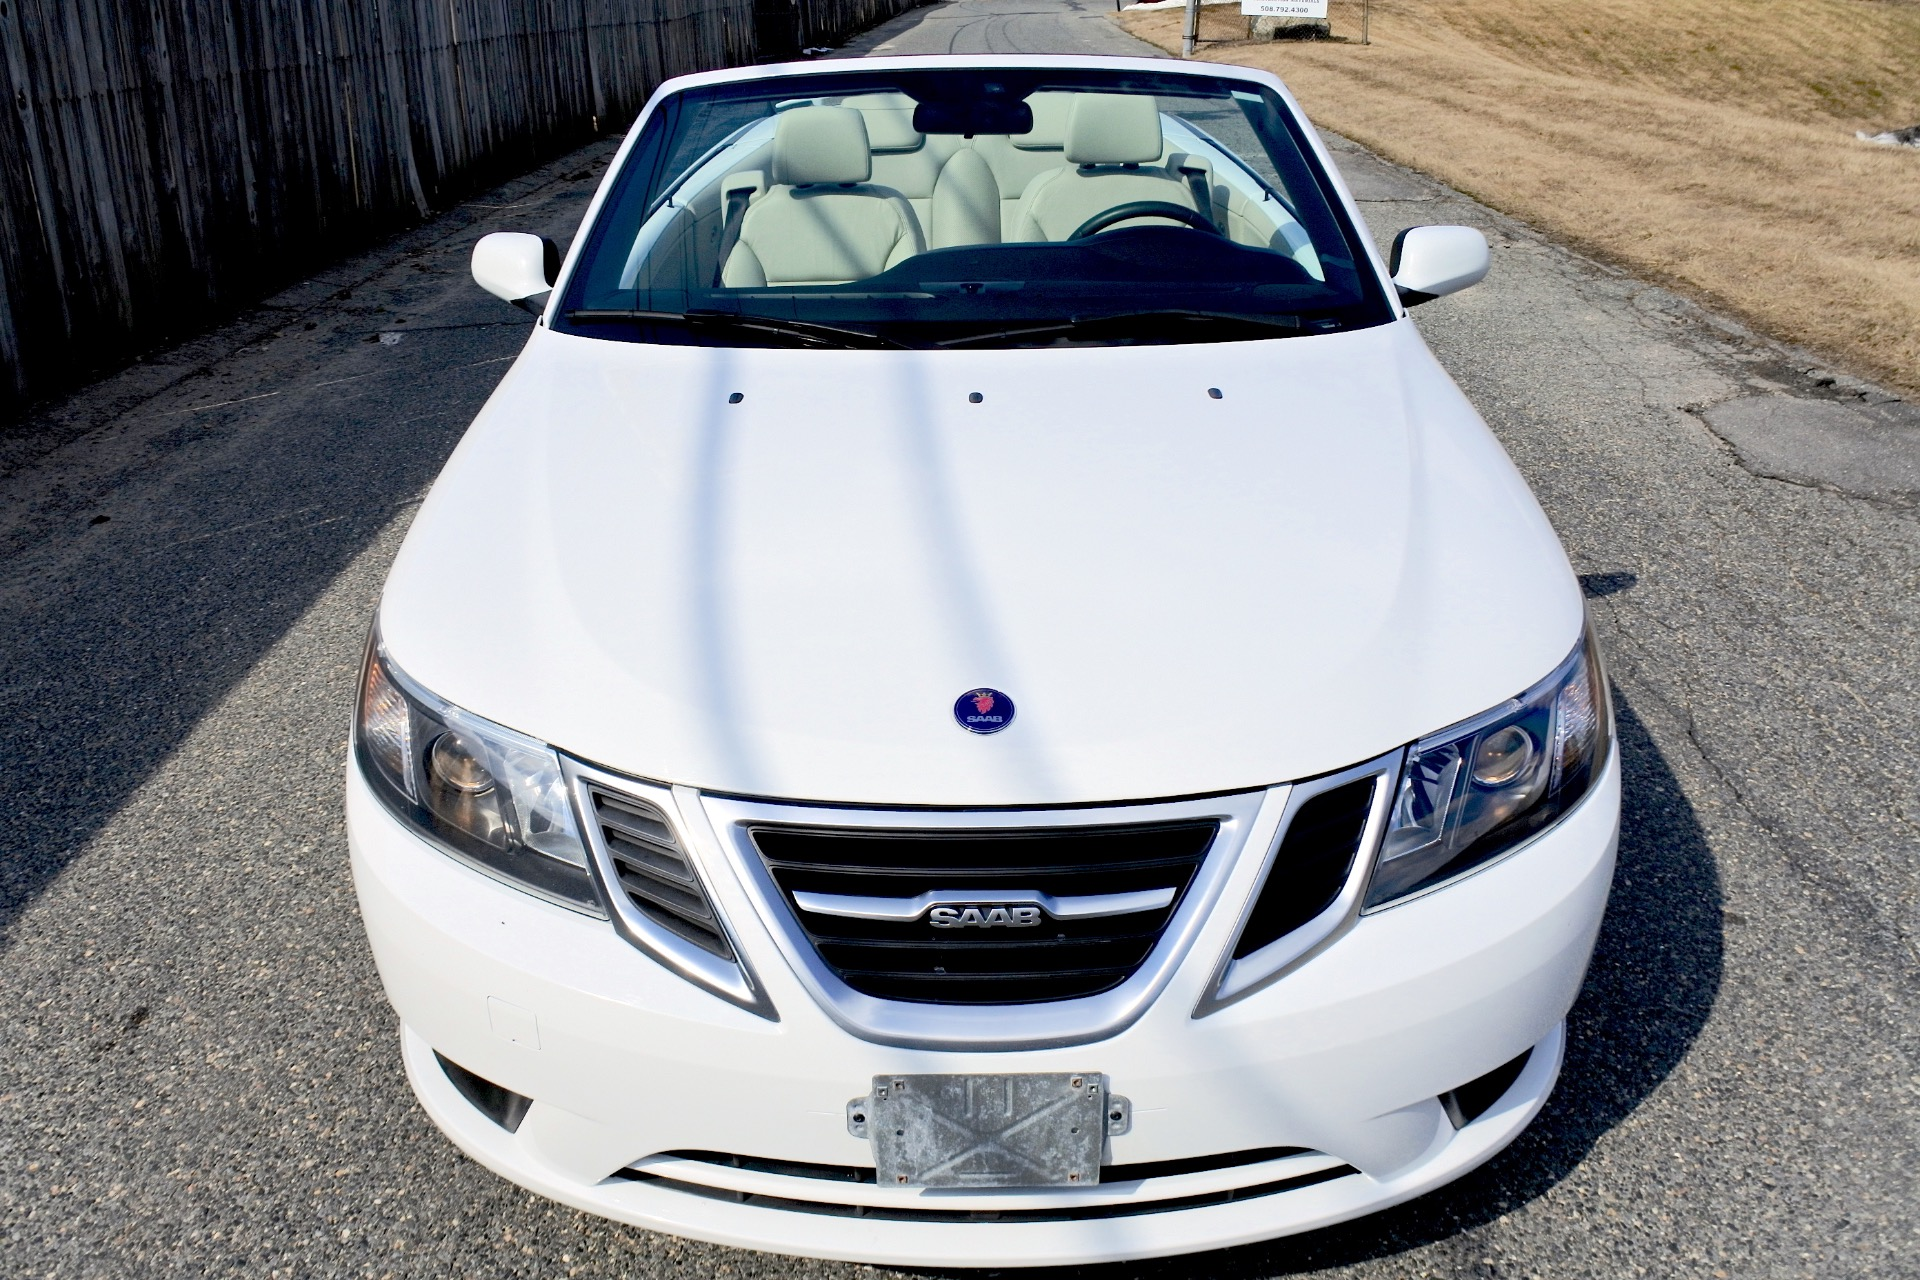 Used 2011 Saab 9-3 2dr Conv Auto FWD Used 2011 Saab 9-3 2dr Conv Auto FWD for sale  at Metro West Motorcars LLC in Shrewsbury MA 8